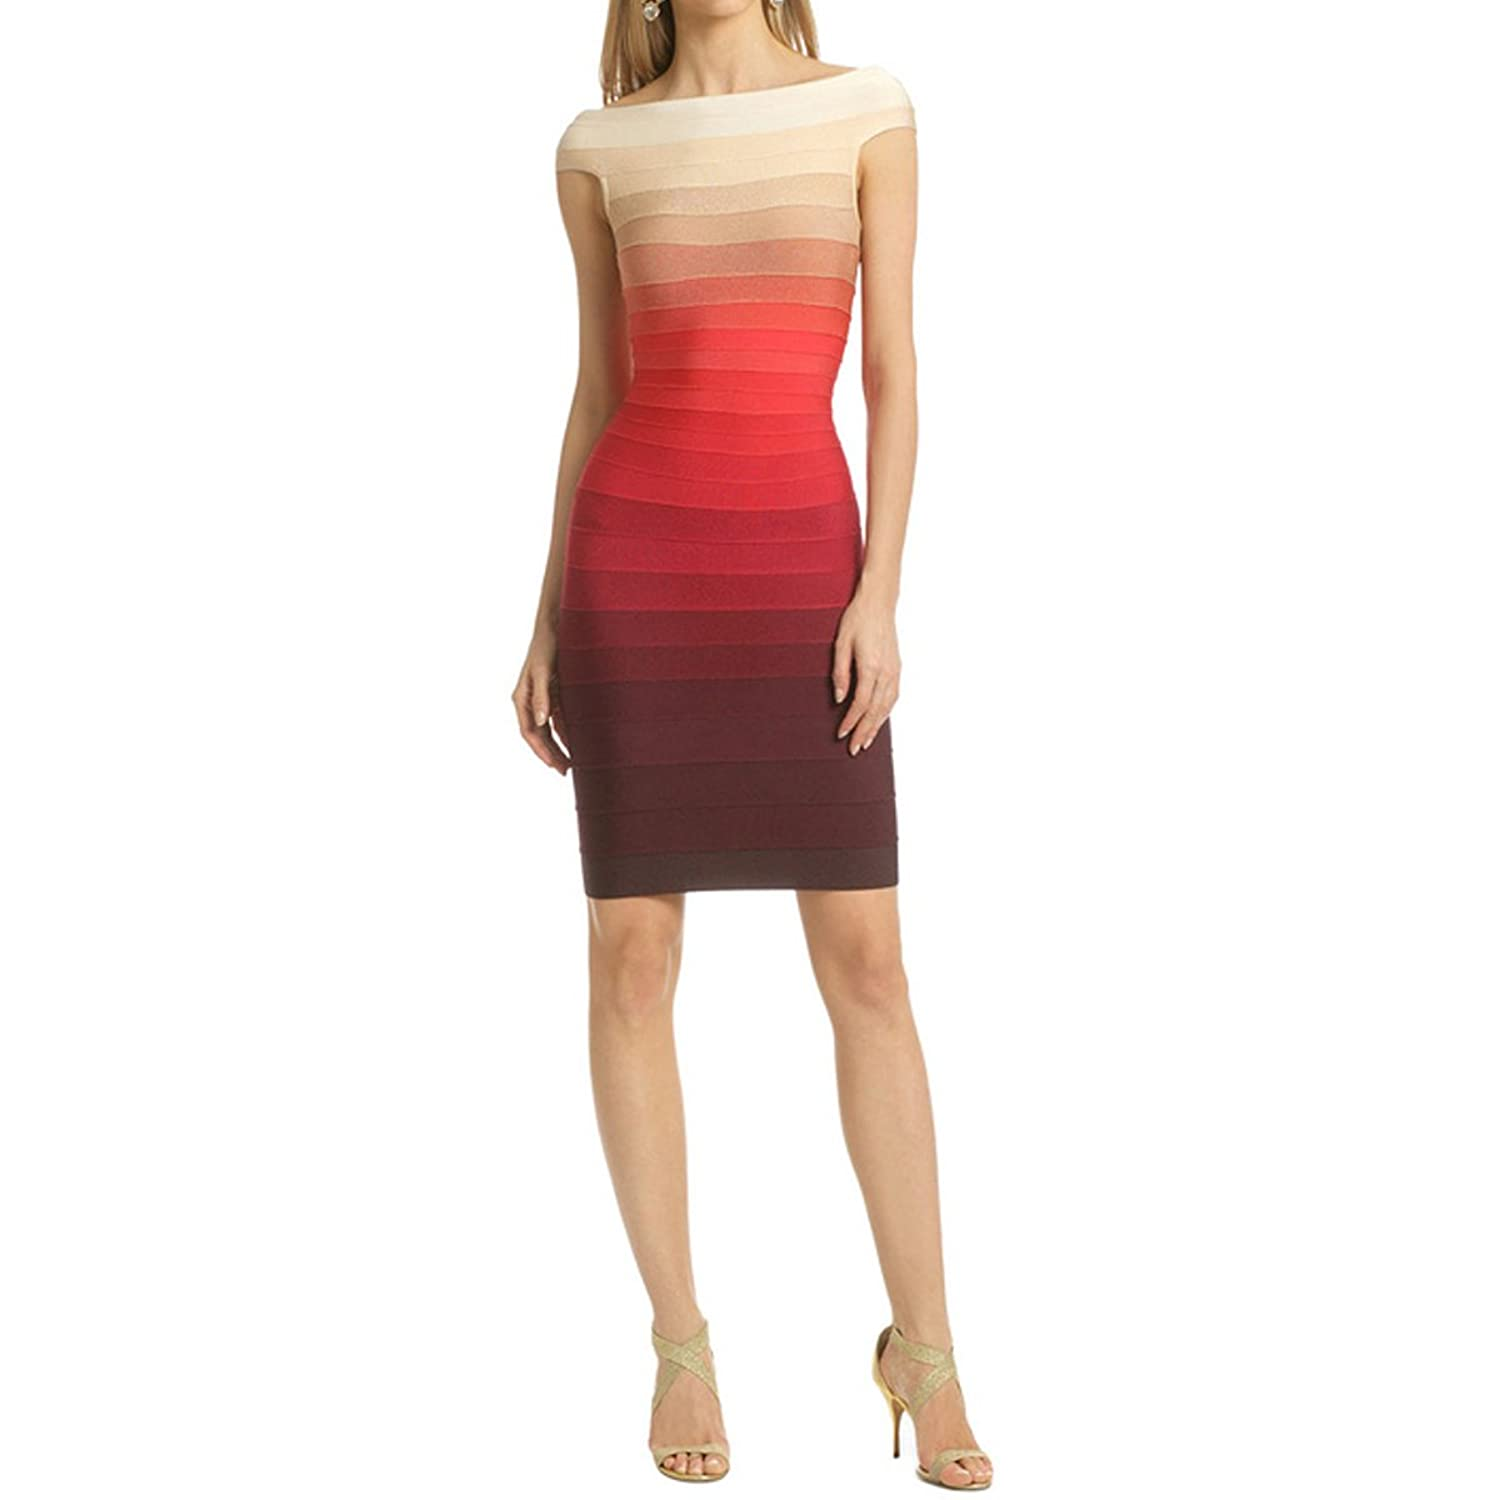 Hlbcbg Rayon Women's Bandage Bodycon Dress Cocktail Party Dress 2327